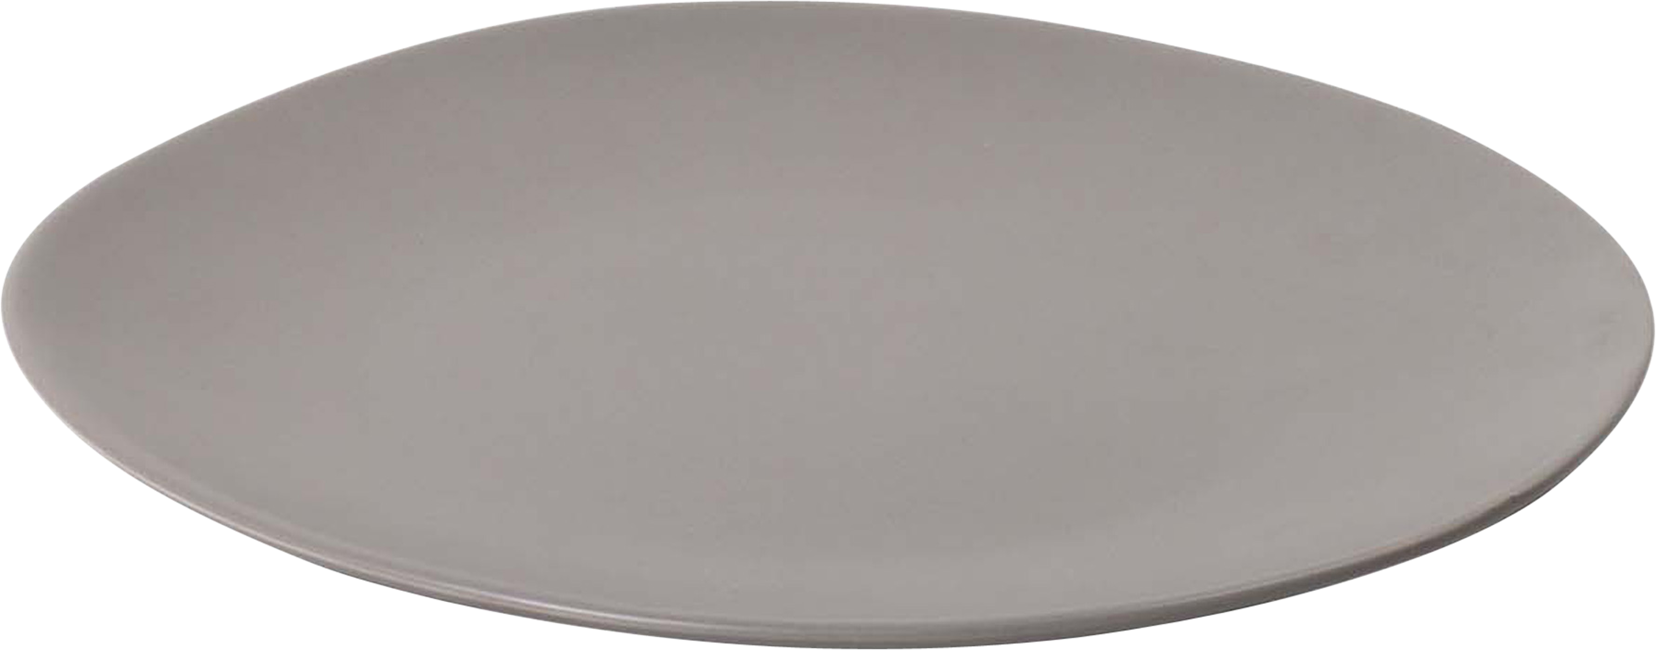 Aura Dinner Plate - Grey - 28cm